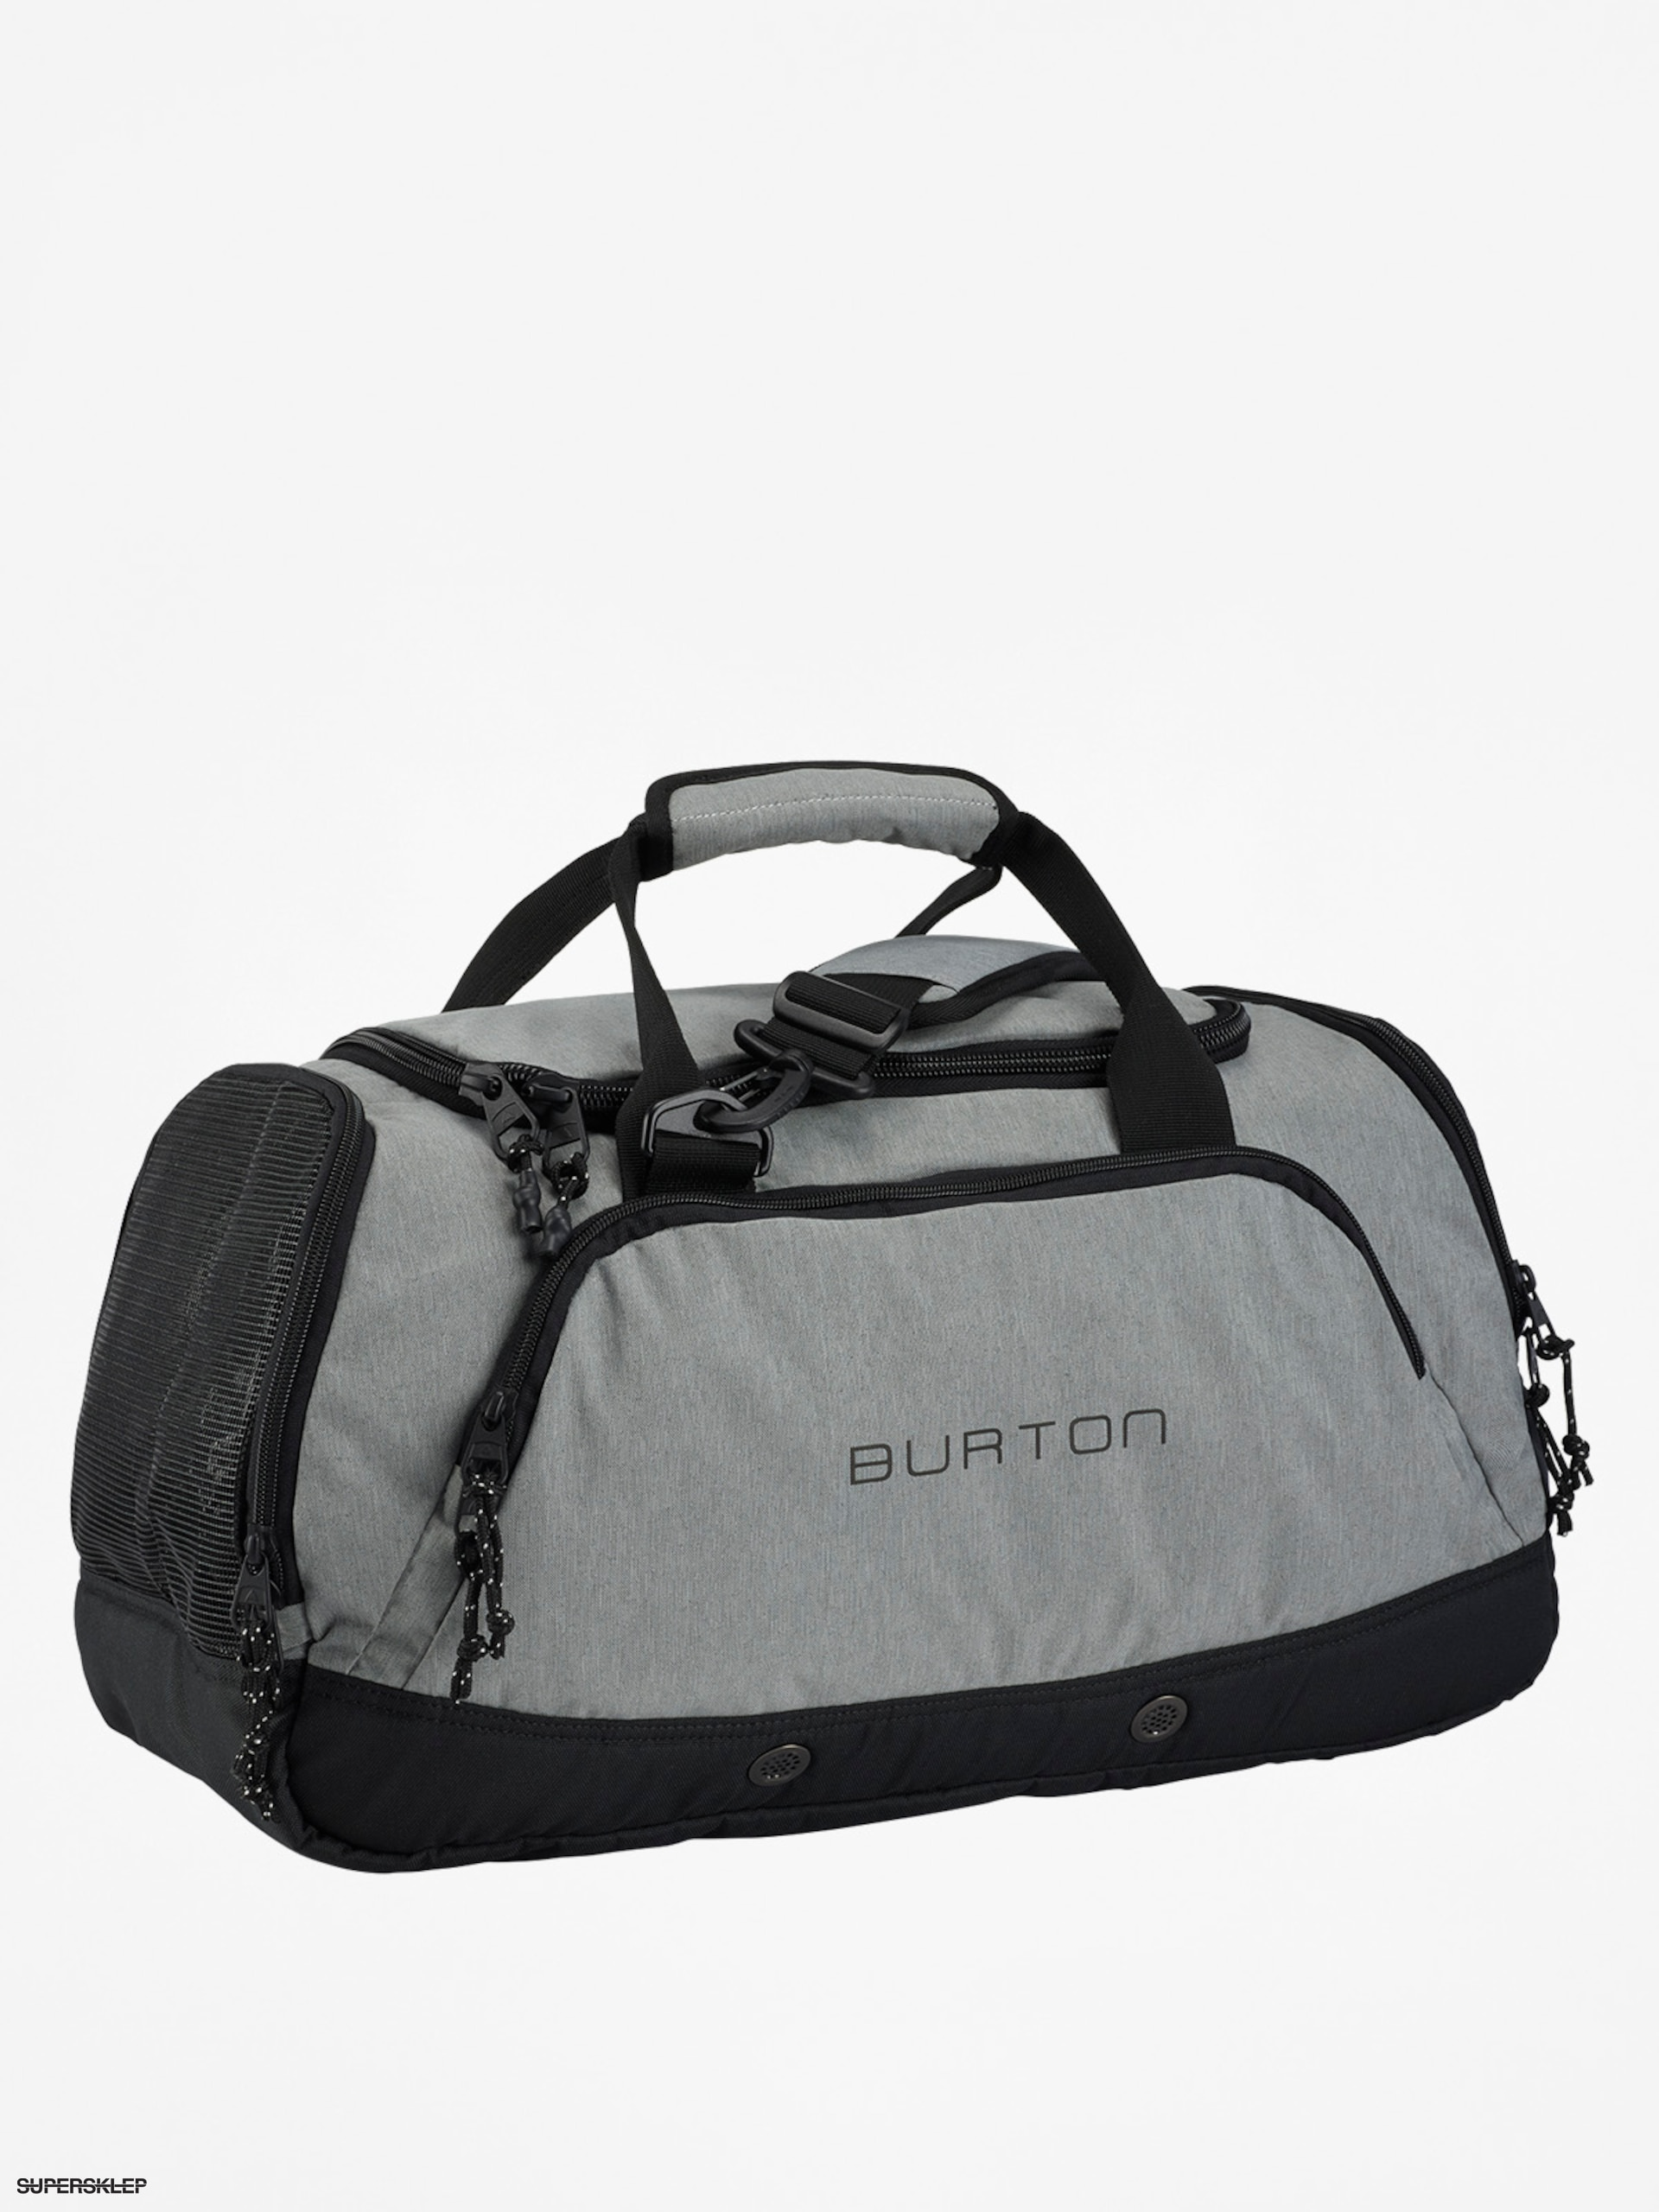 Torba Burton Boothaus Bag Md 2.0 (grey heather)